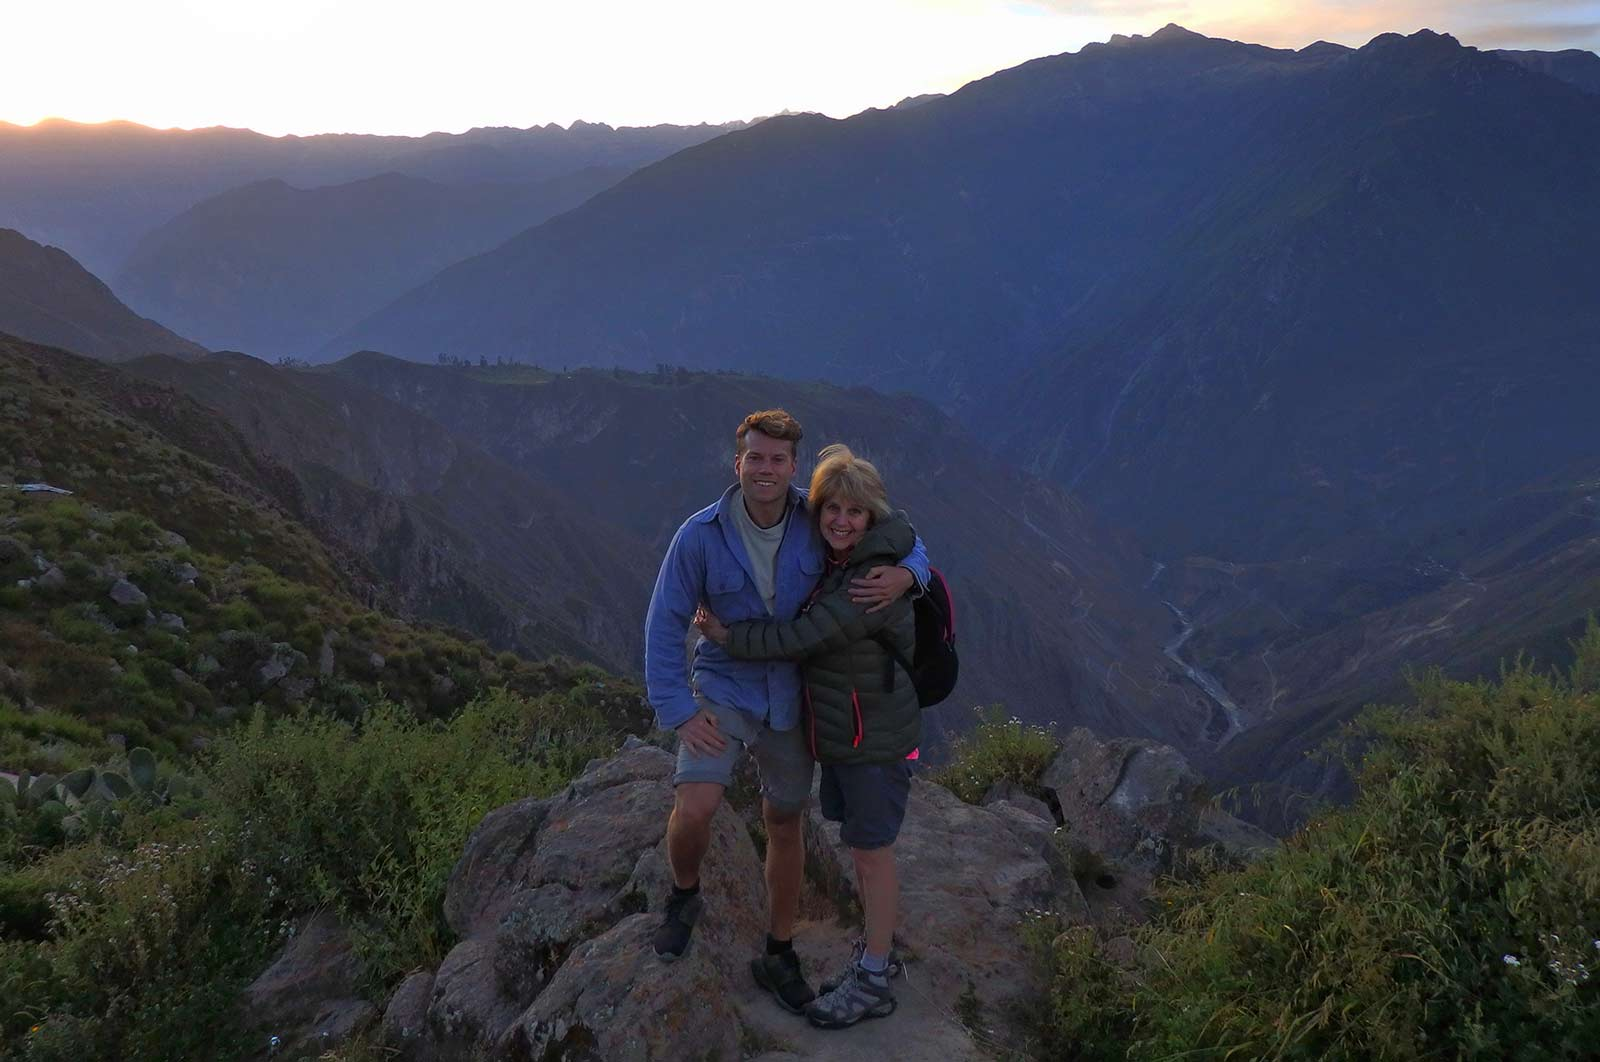 Here's why trekking Colca Canyon took my breath away. A son and mum hug with Colca Canyon in the backdrop